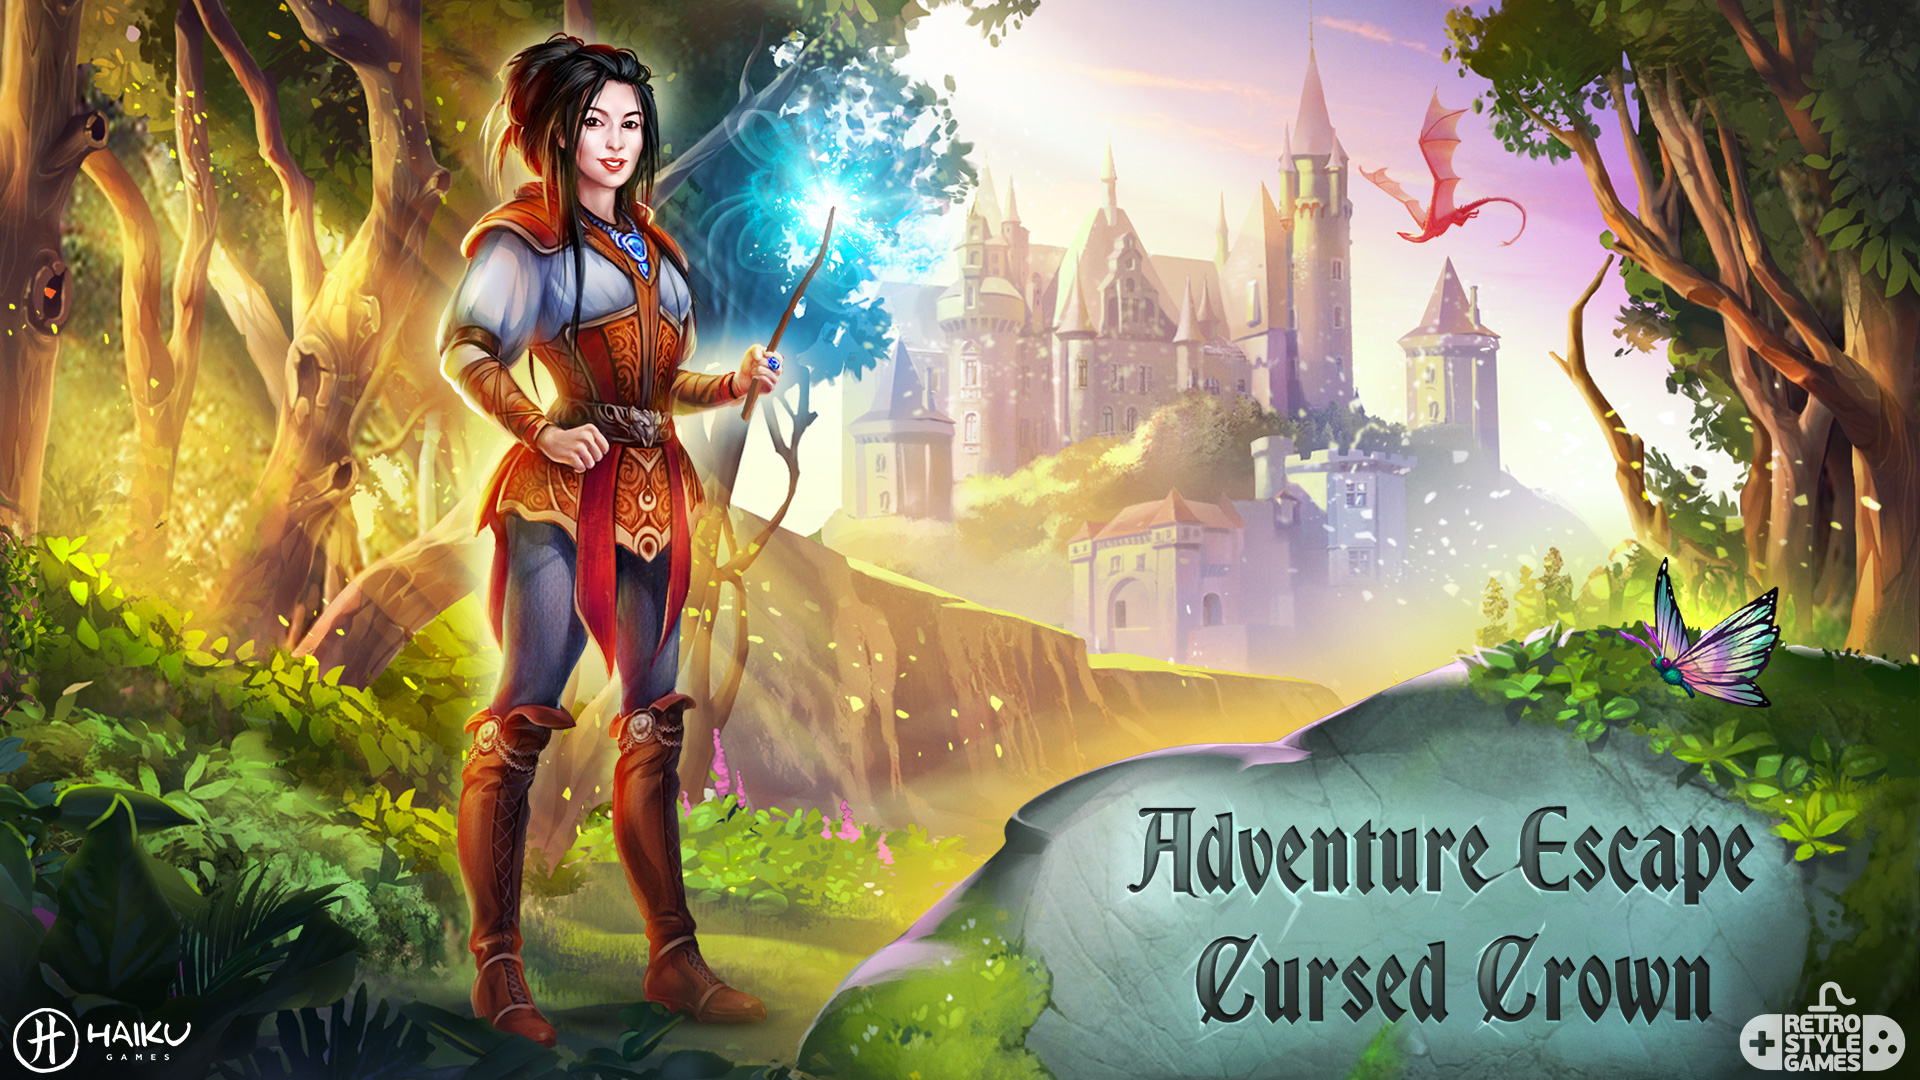 Haiku Cursed Crown 2D Characters background Game of Thrones